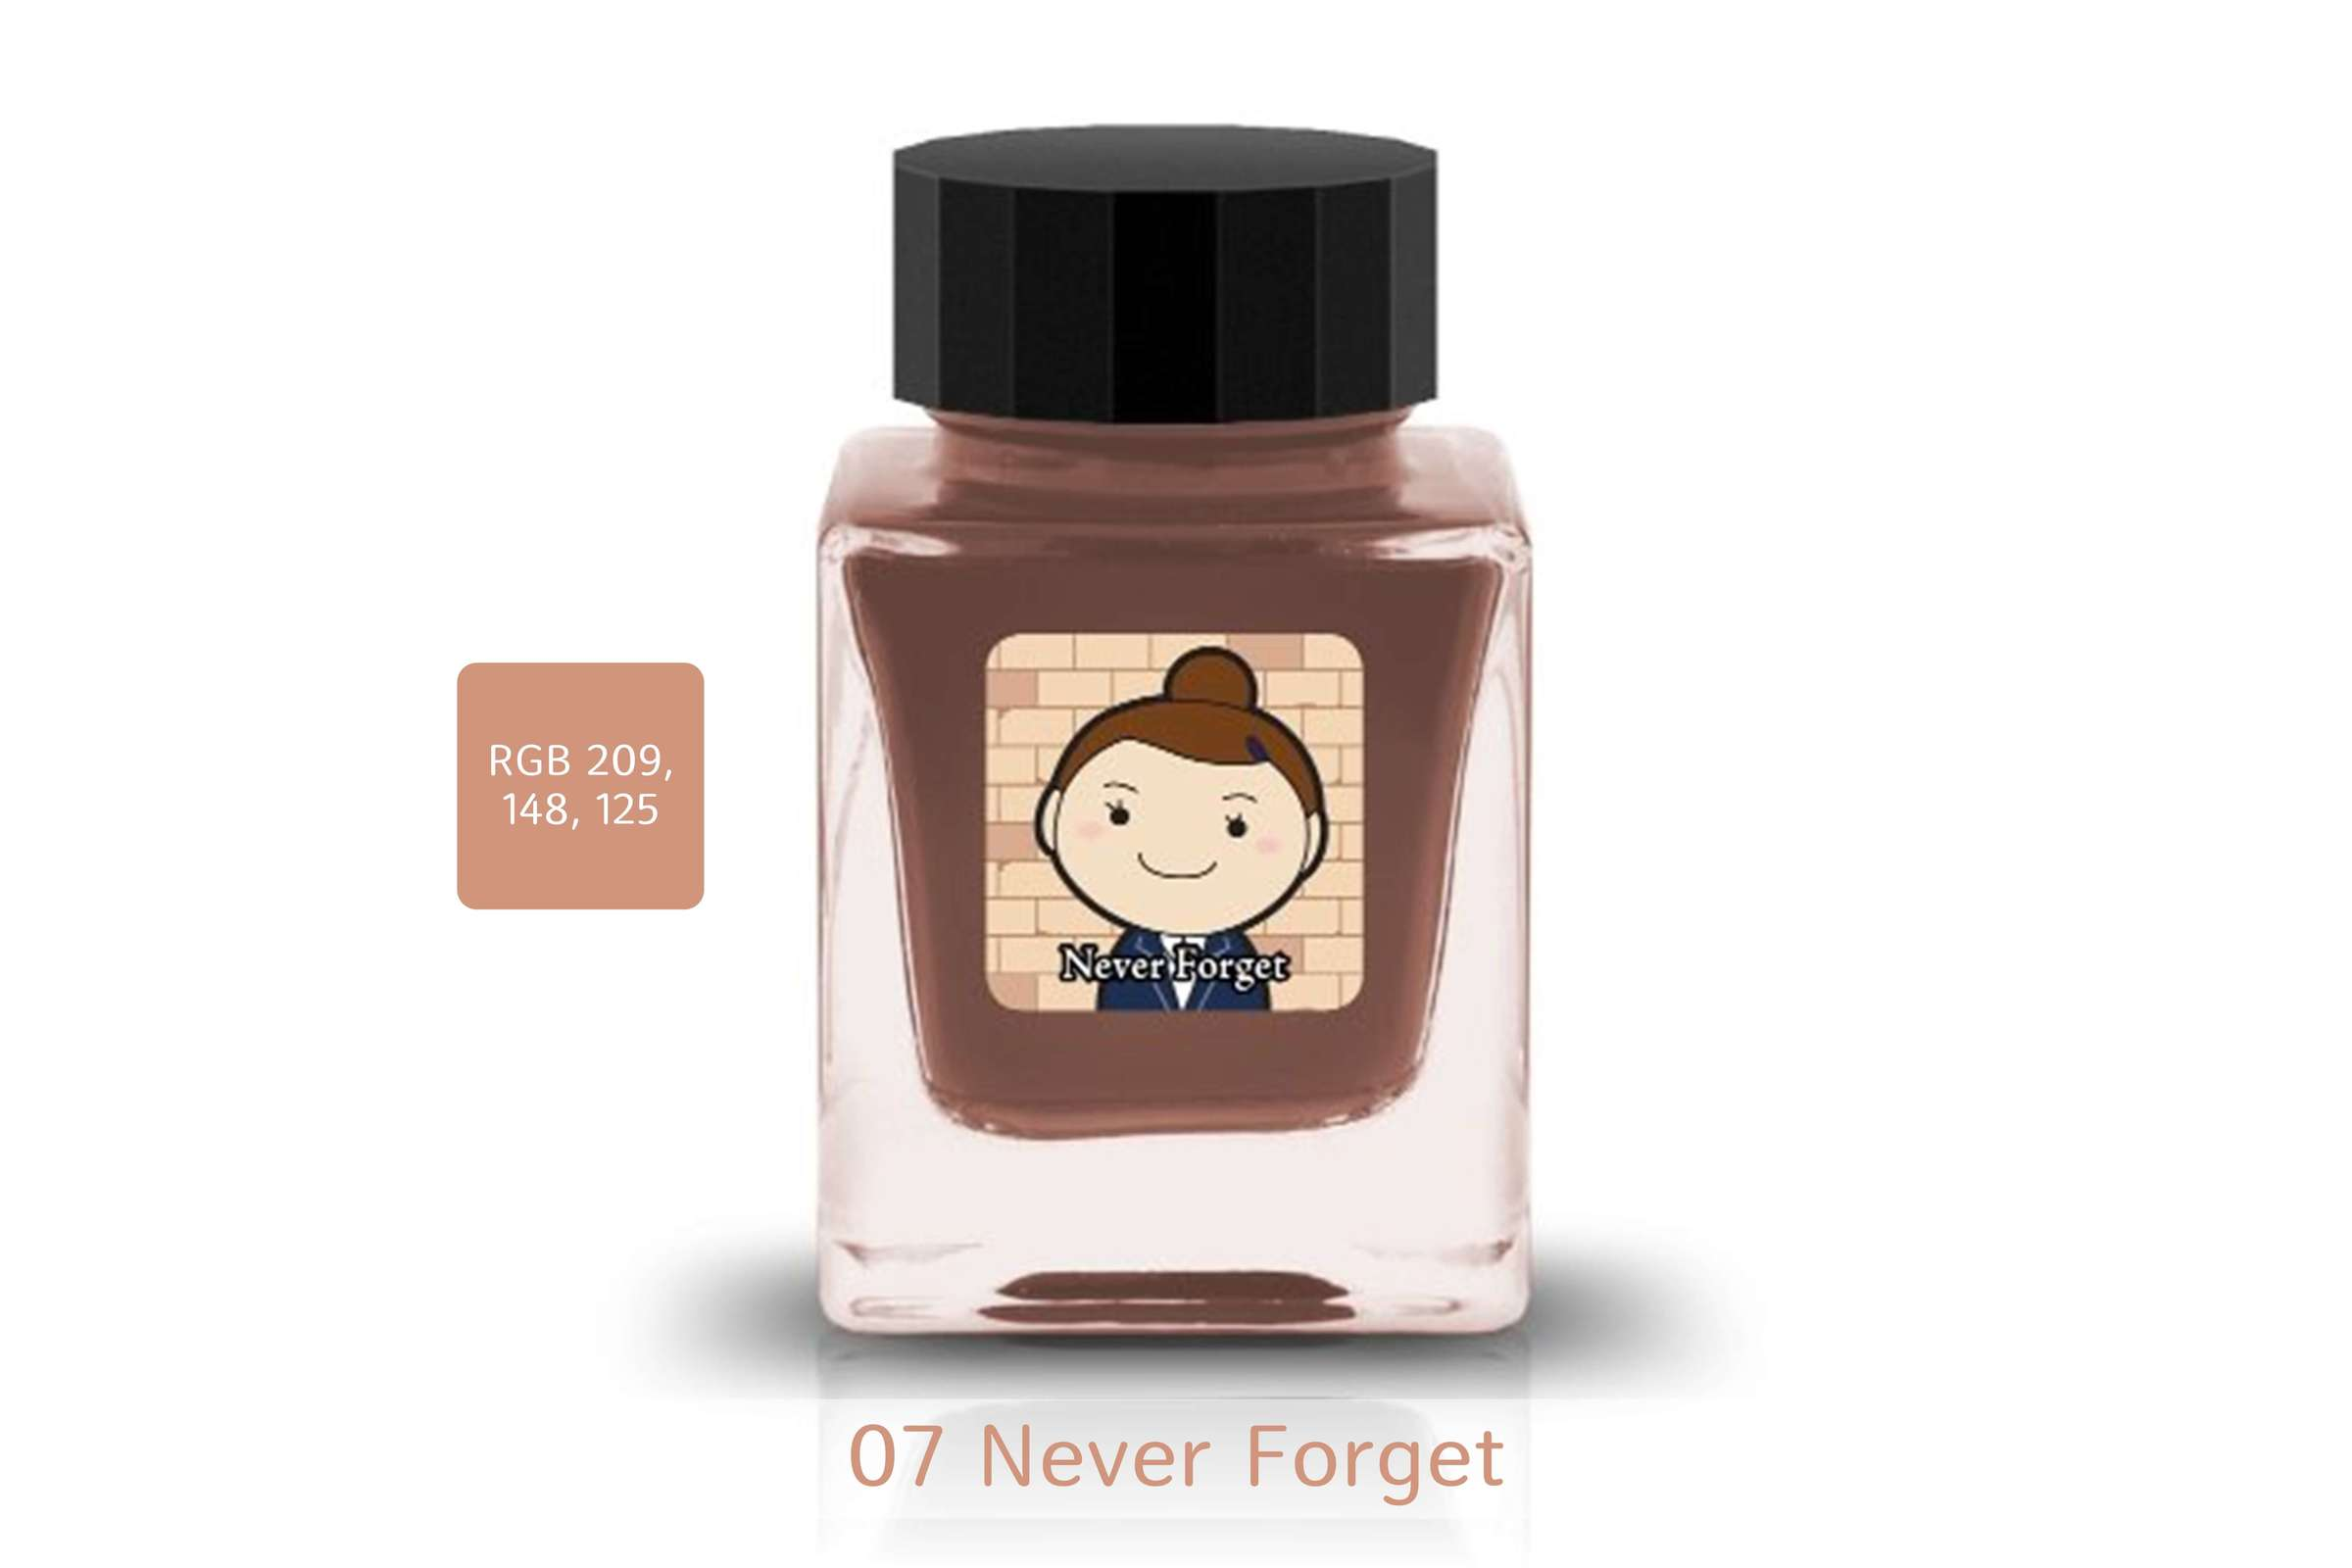 07 Never Forget (1).JPG